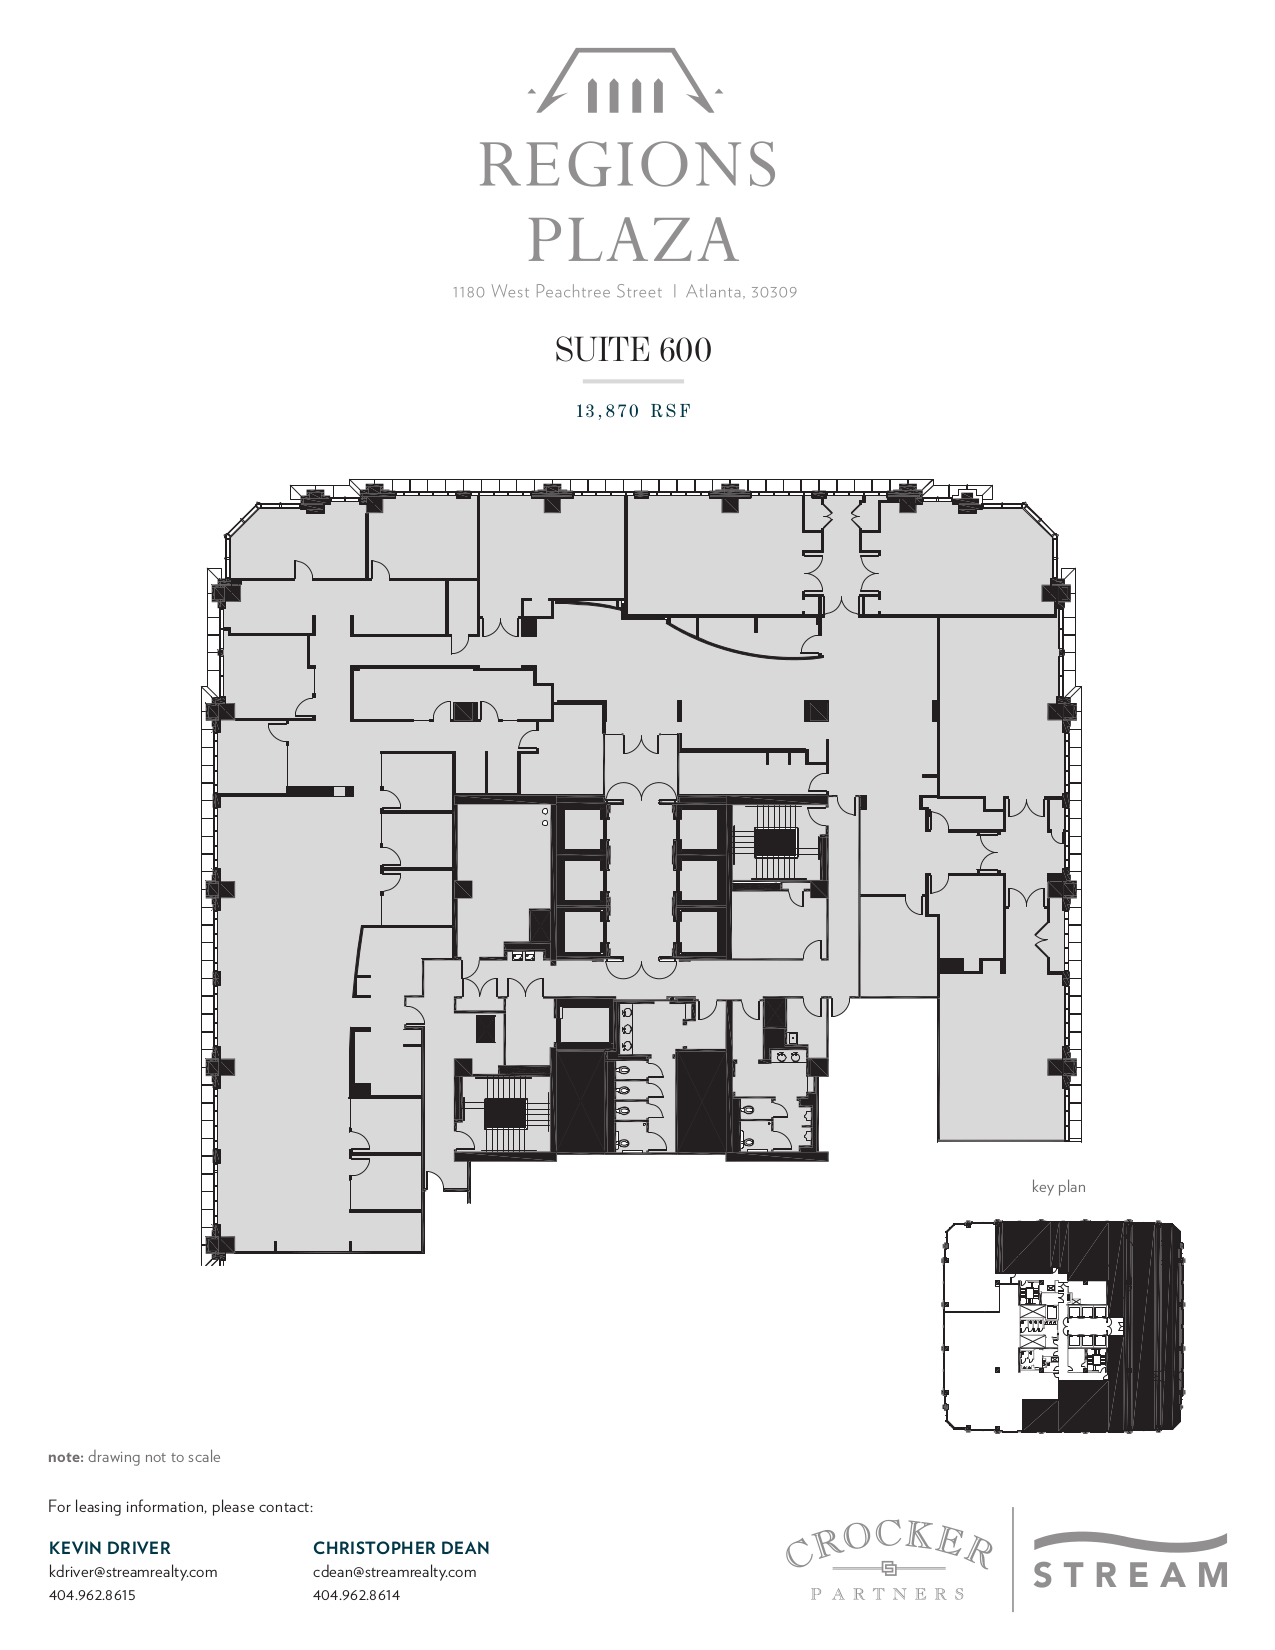 Regions plaza 1180 w peachtree street 6th floor vts for Vice president house floor plan